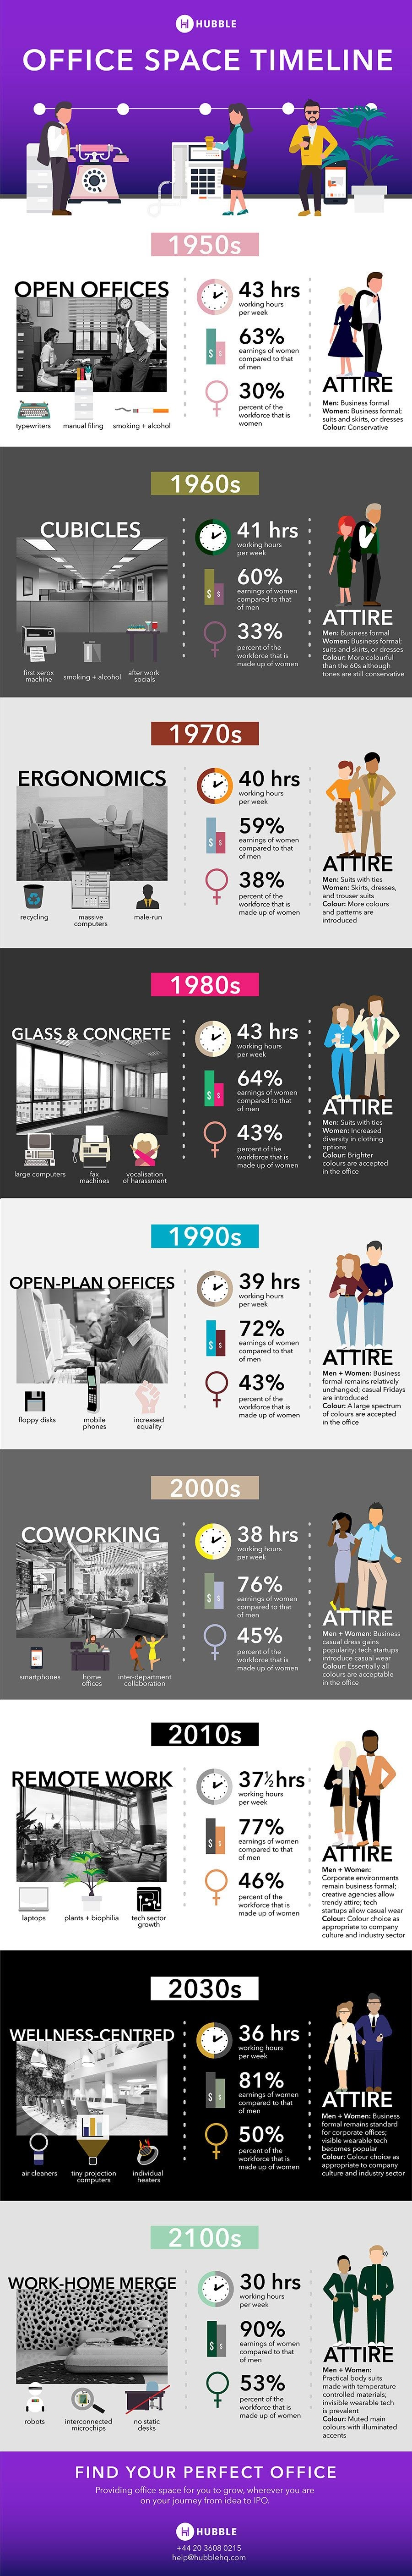 Office Space Timeline: Past, Present, and Future [INFOGRAPHIC]